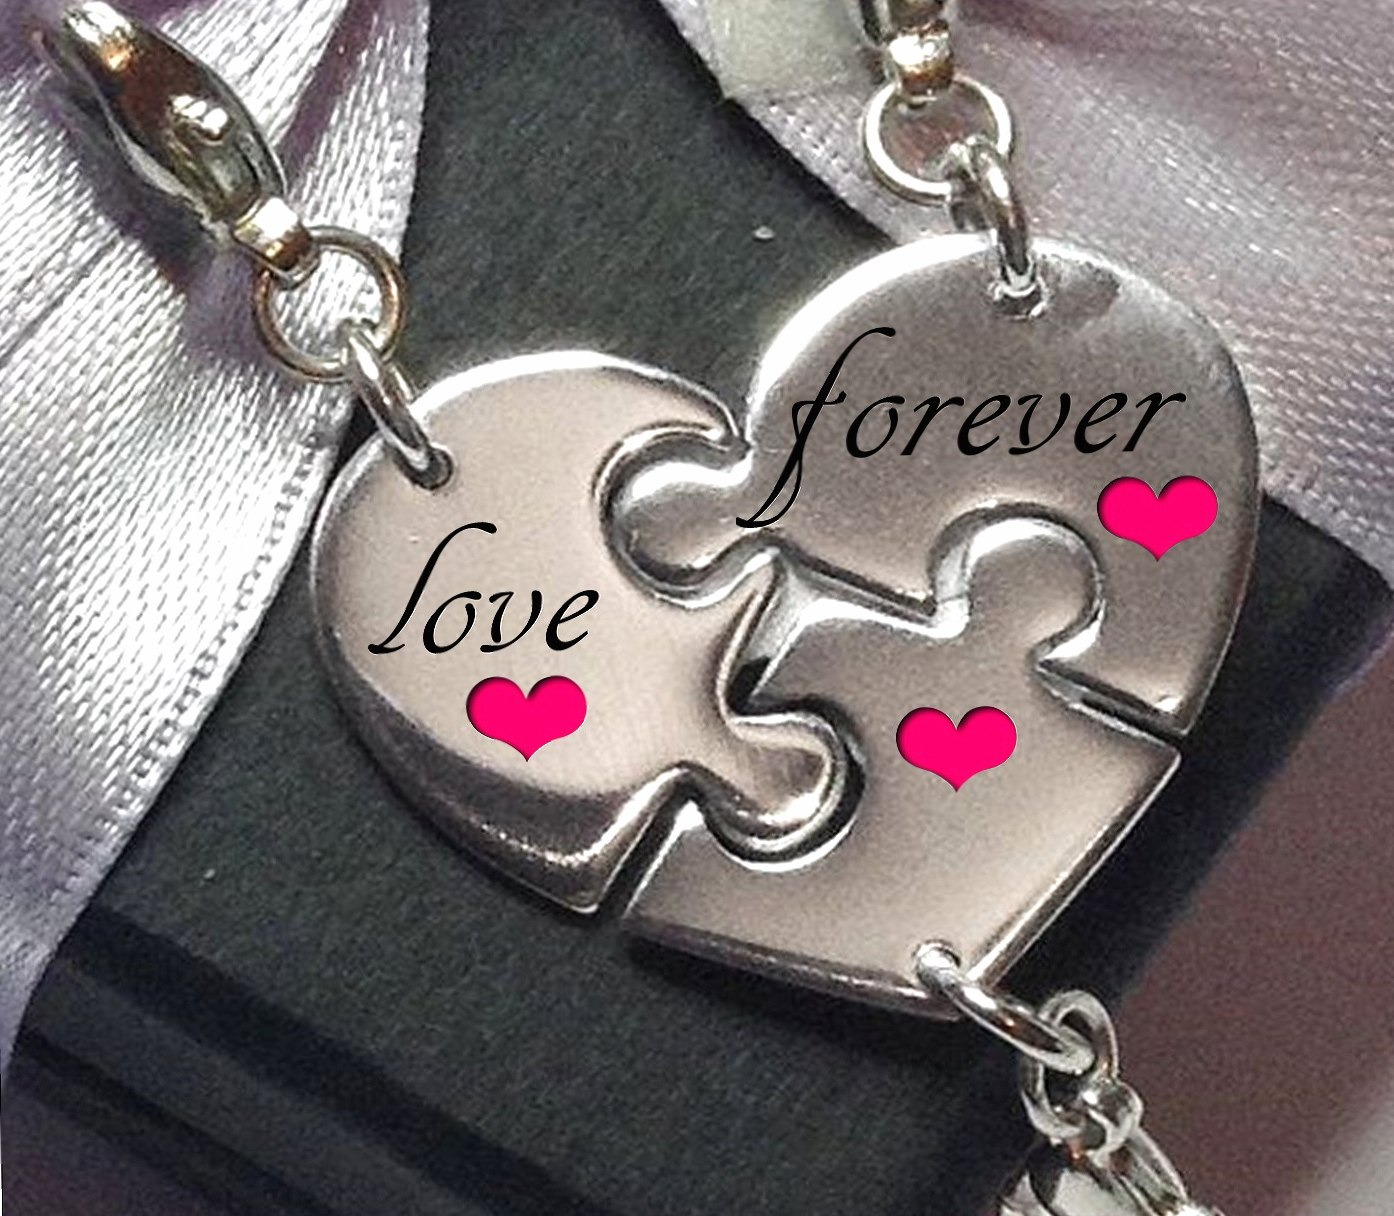 Love Forever wallpapers HD quality